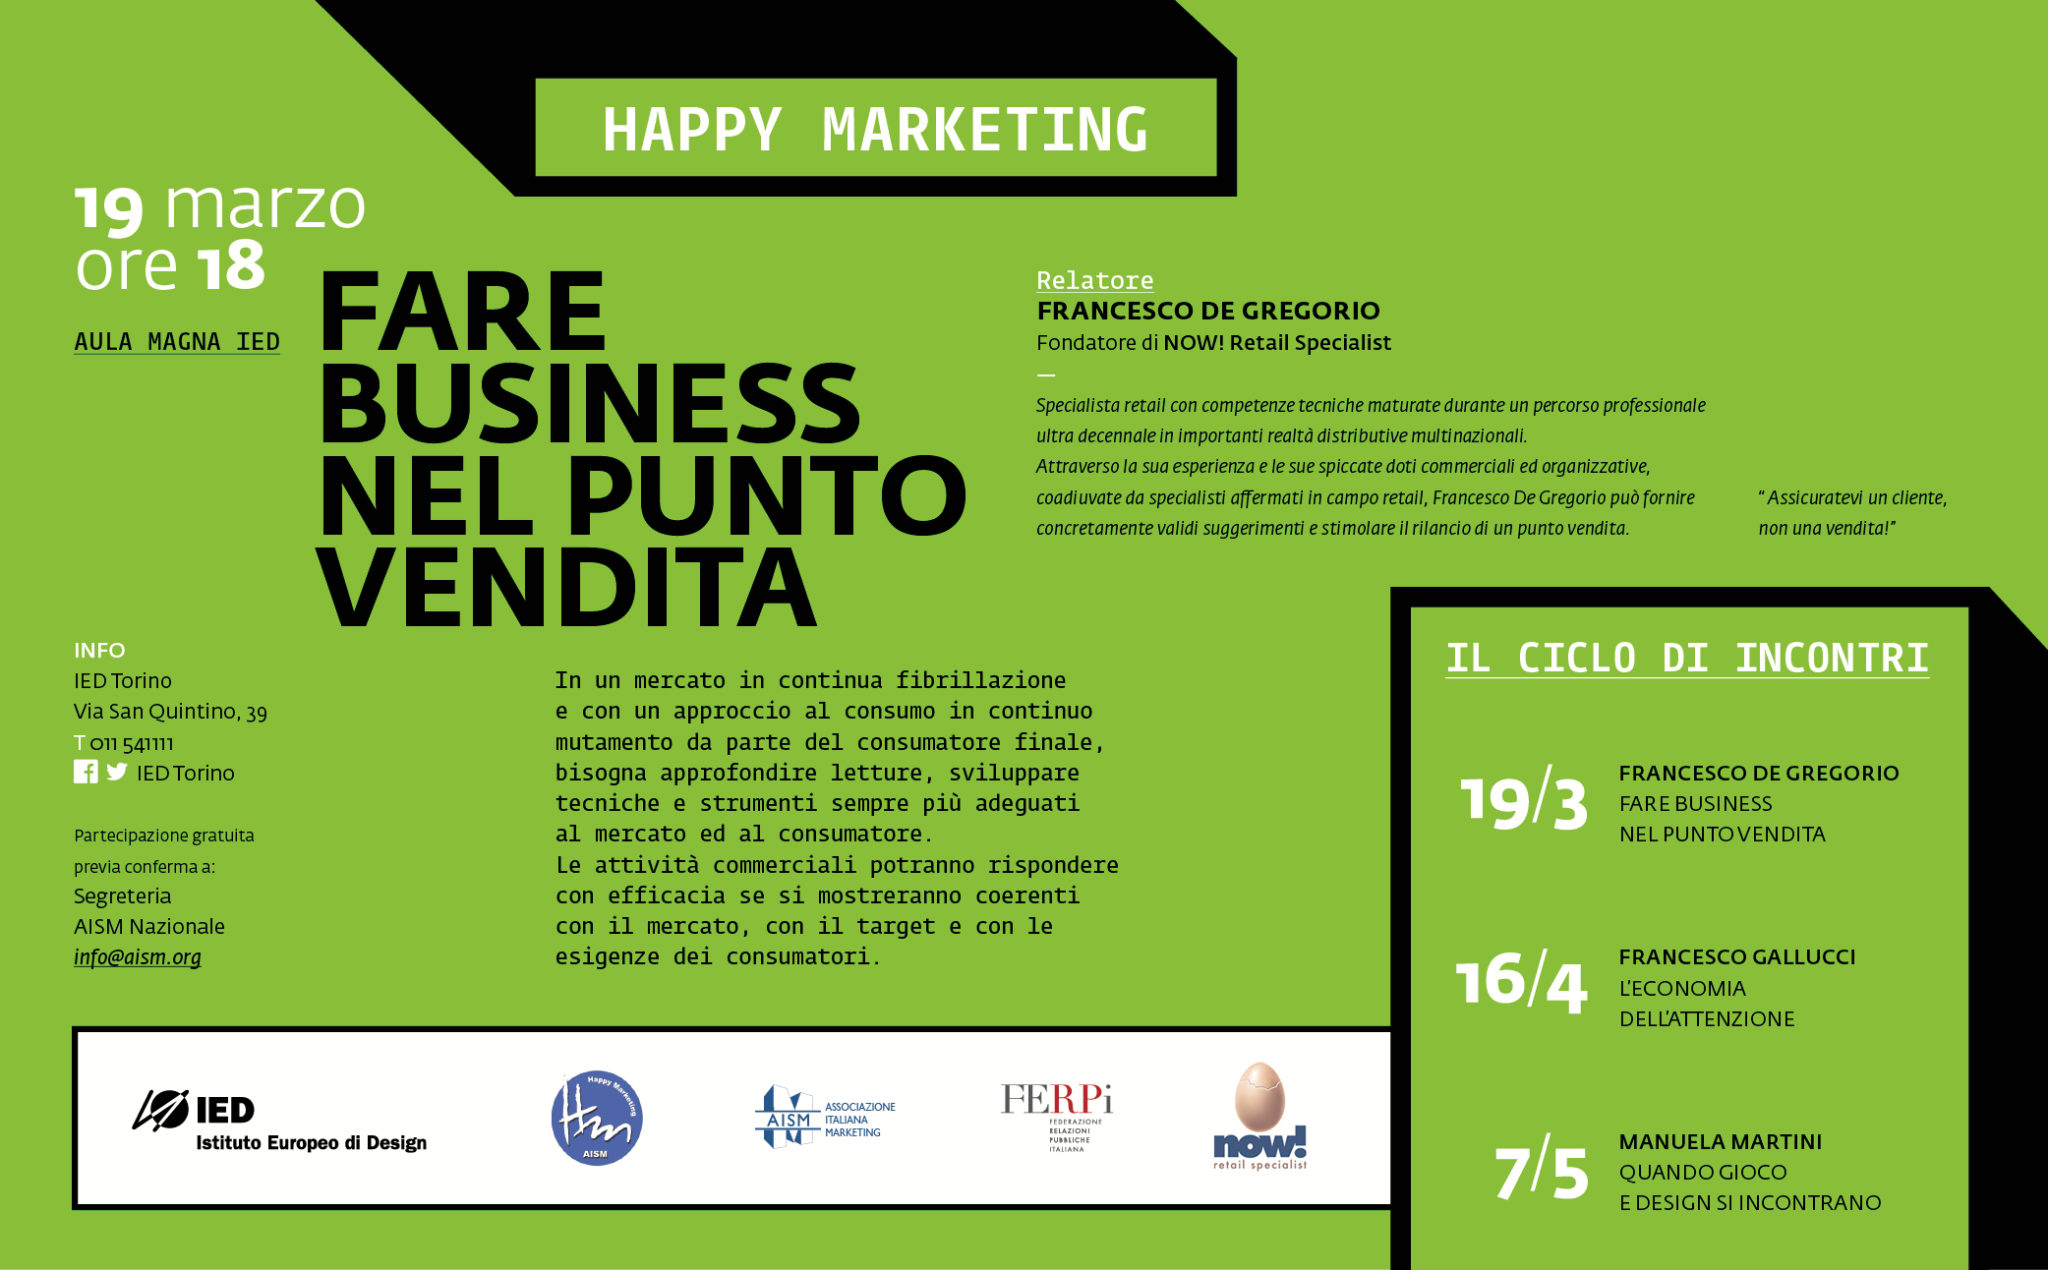 HappyMarketing_FARE BUSINESS NEL PUNTO VENDITA